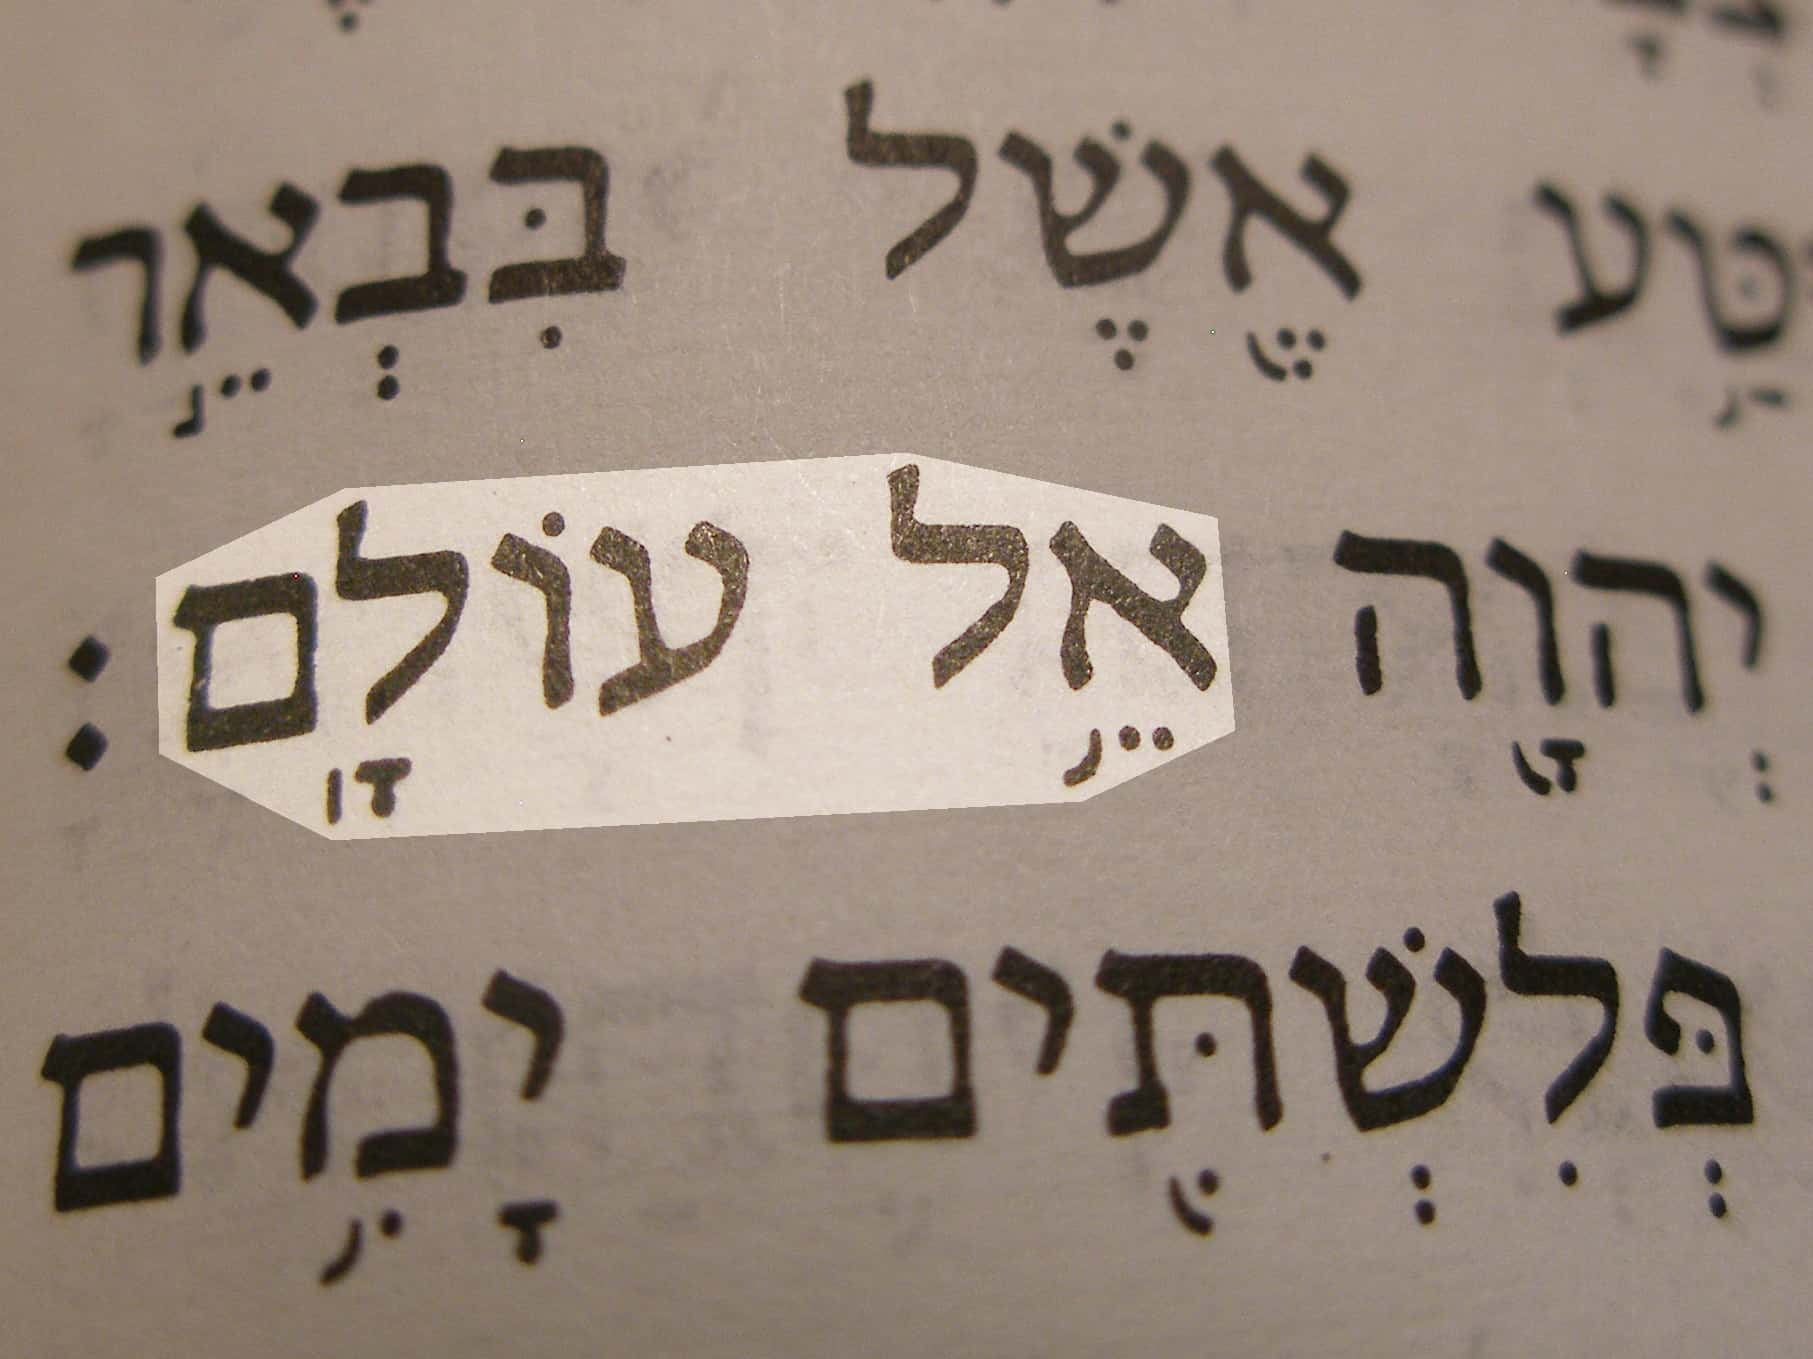 hebrew ehe eternal language Hebrew has been the sacred language of the jewish people — the language of its religion, culture and civilization it has been, in sum, the language of judaism and intimately identified with the national and religious experiences of the jewish people throughout the generations.